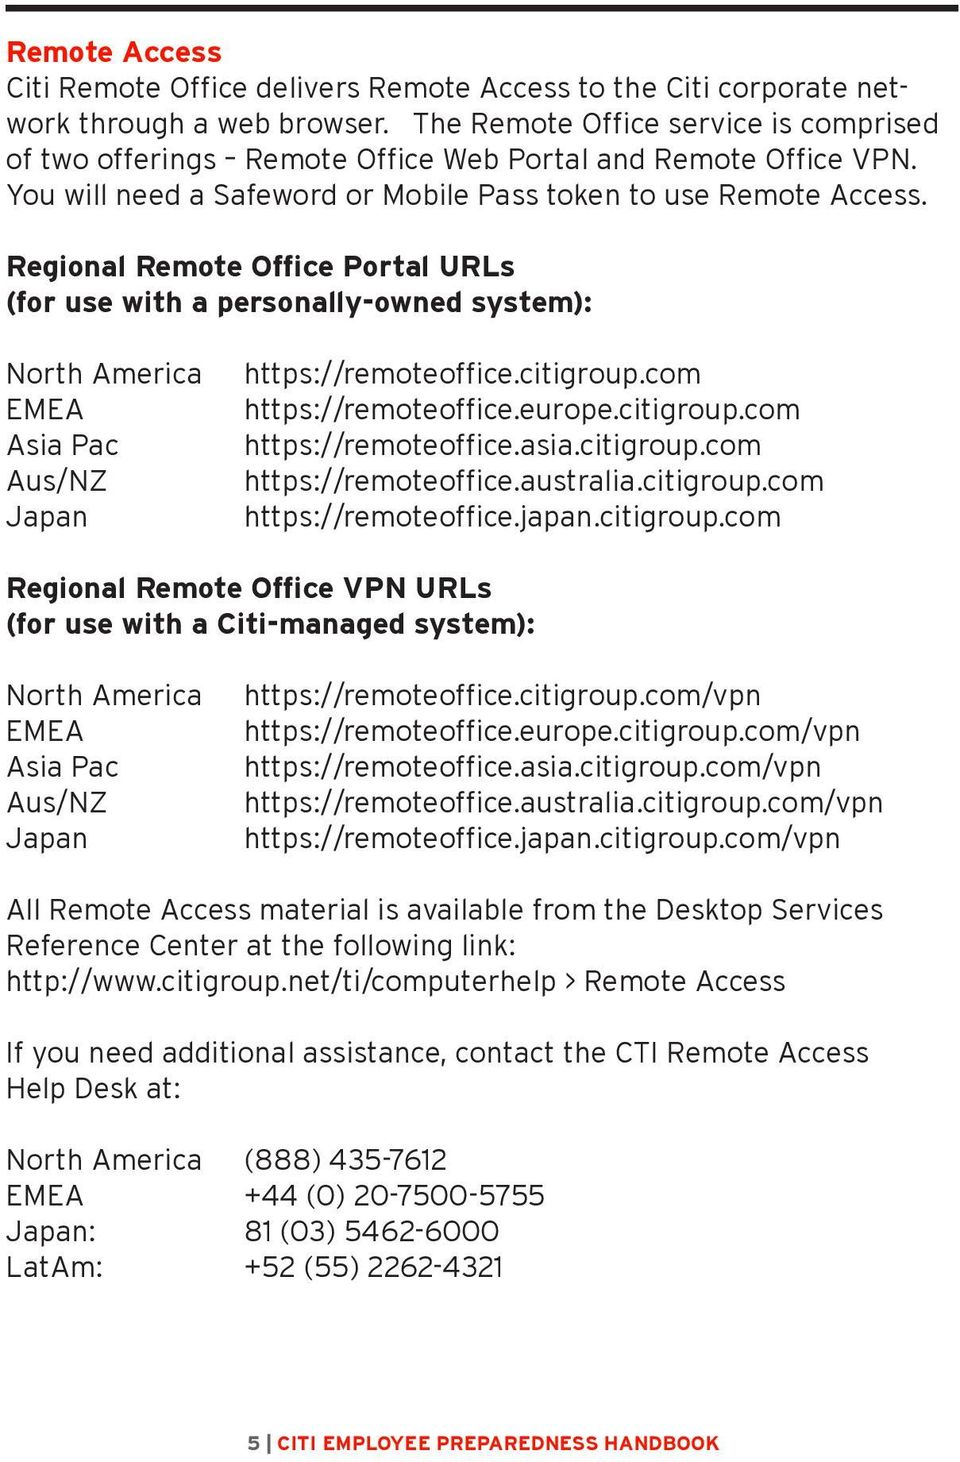 Regional Remote Office Portal URLs (for use with a personally-owned system): North America EMEA Asia Pac Aus/NZ Japan https://remoteoffice.citigroup.com https://remoteoffice.europe.citigroup.com https://remoteoffice.asia.